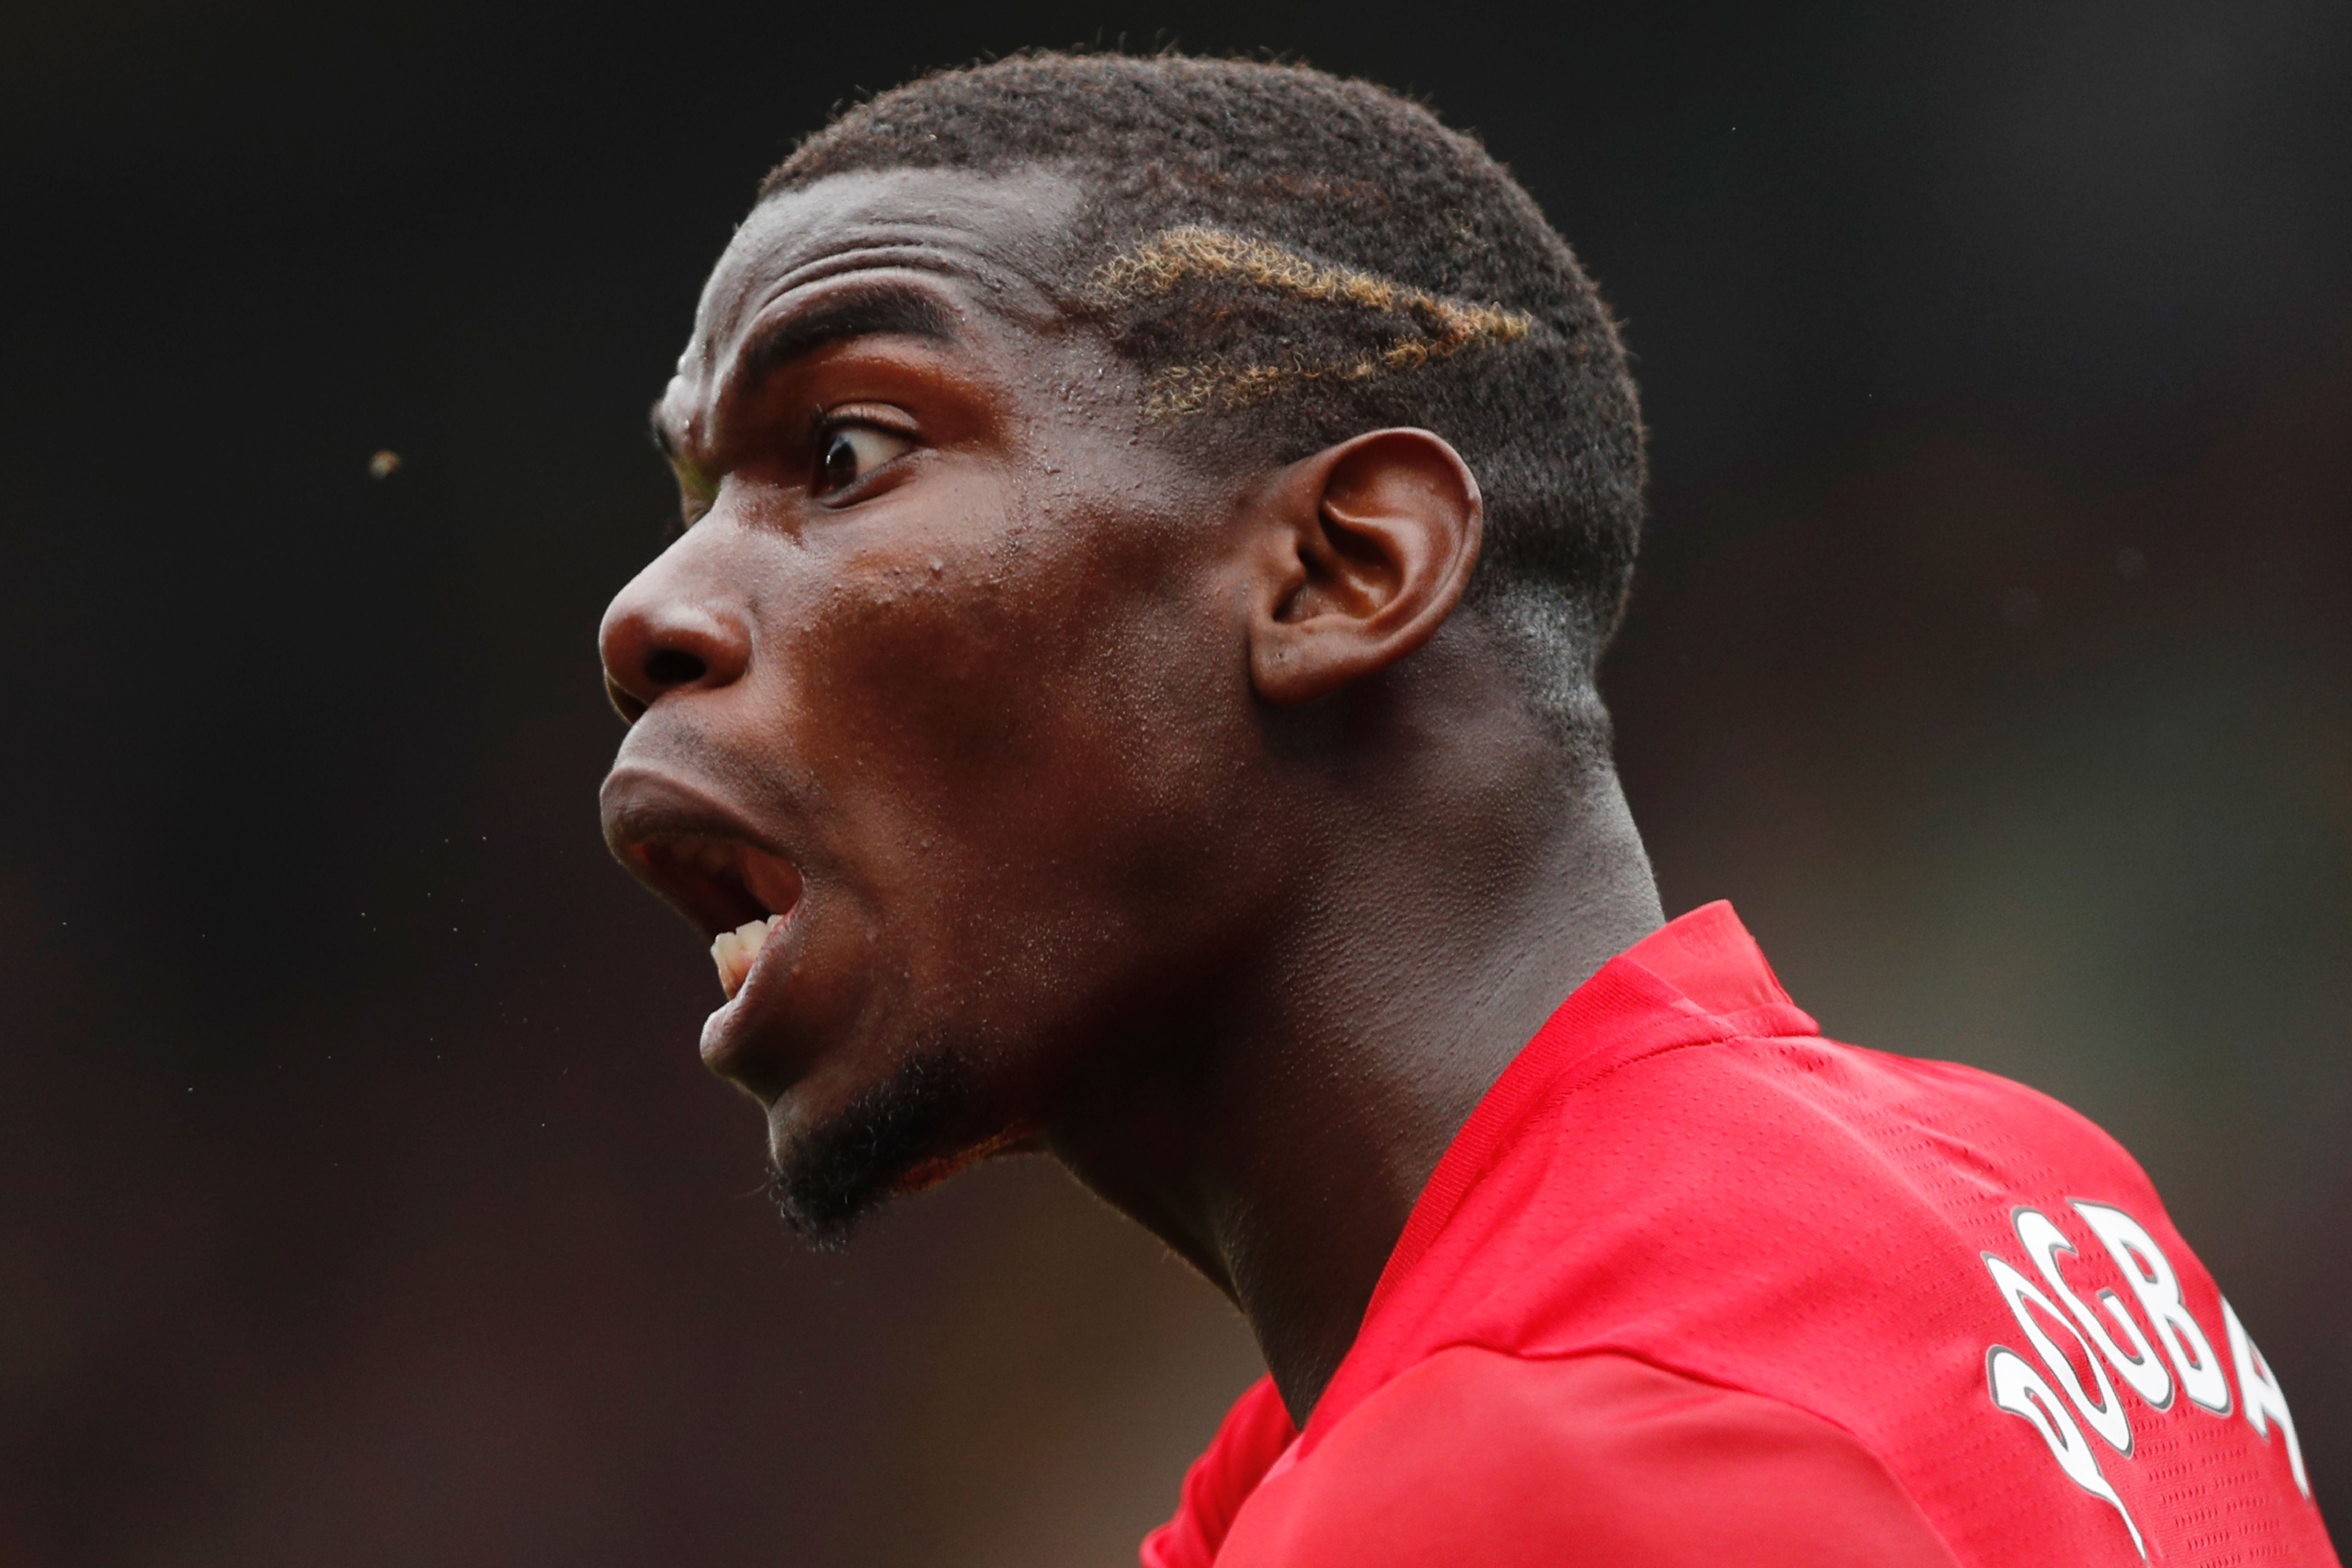 Manchester United's French midfielder Paul Pogba shouts at the linesman during the English Premier League football match between Watford and Manchester United at Vicarage Road Stadium in Watford, north of London on September 18, 2016. / AFP / Adrian DENNIS / RESTRICTED TO EDITORIAL USE. No use with unauthorized audio, video, data, fixture lists, club/league logos or 'live' services. Online in-match use limited to 75 images, no video emulation. No use in betting, games or single club/league/player publications. / (Photo credit should read ADRIAN DENNIS/AFP/Getty Images)